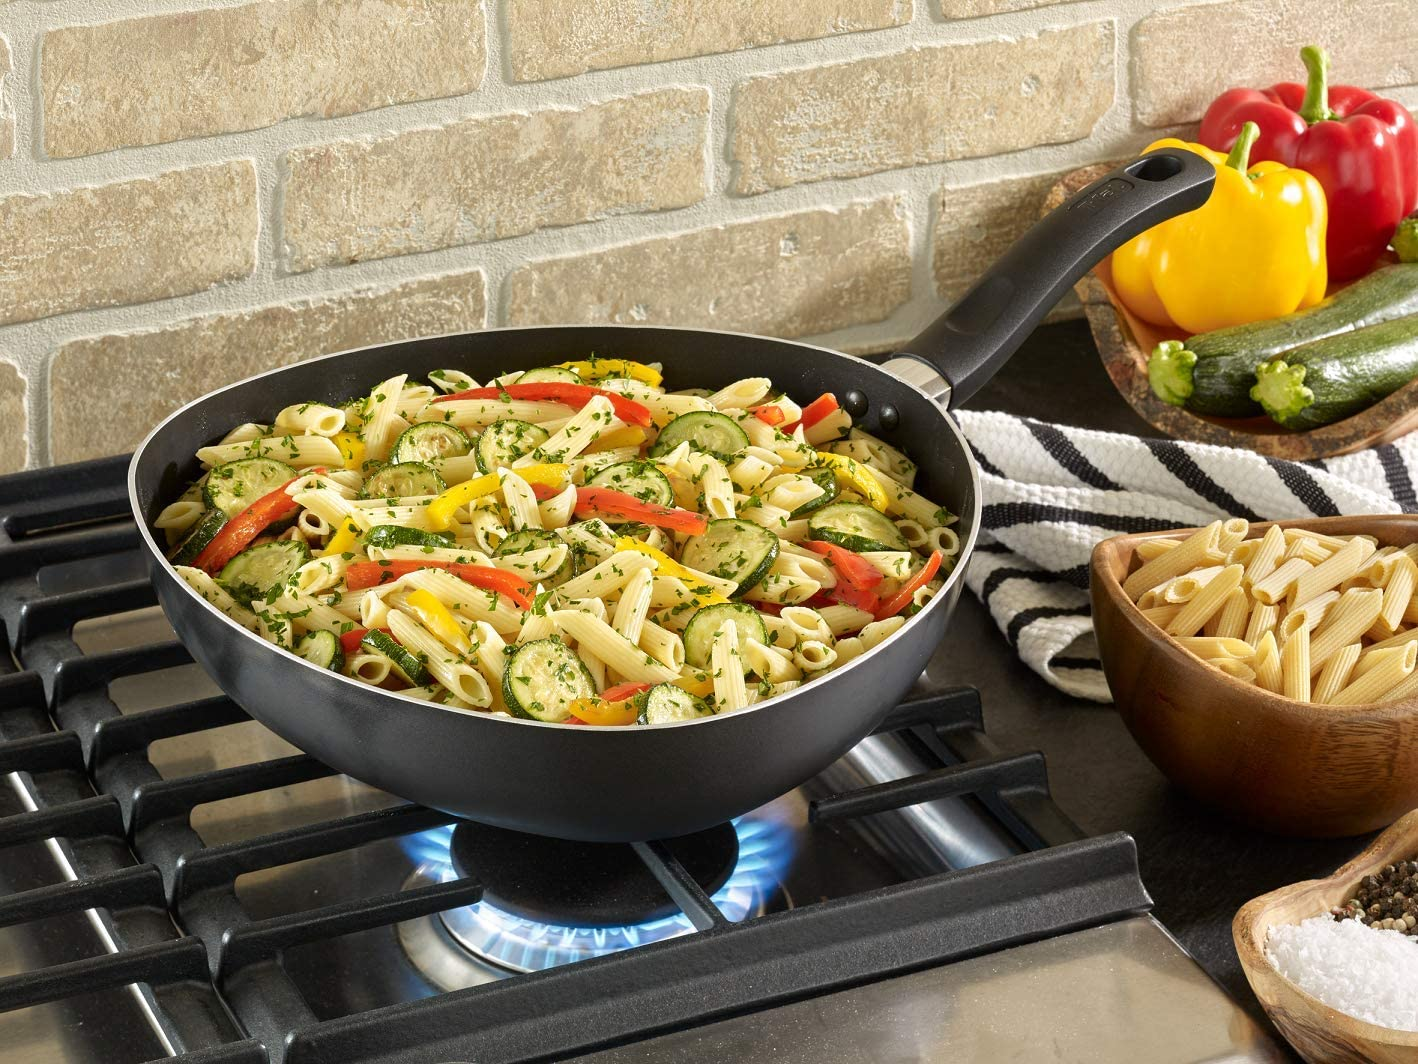 T-Fal Pans Reviews - The Buying Guide You Need 1